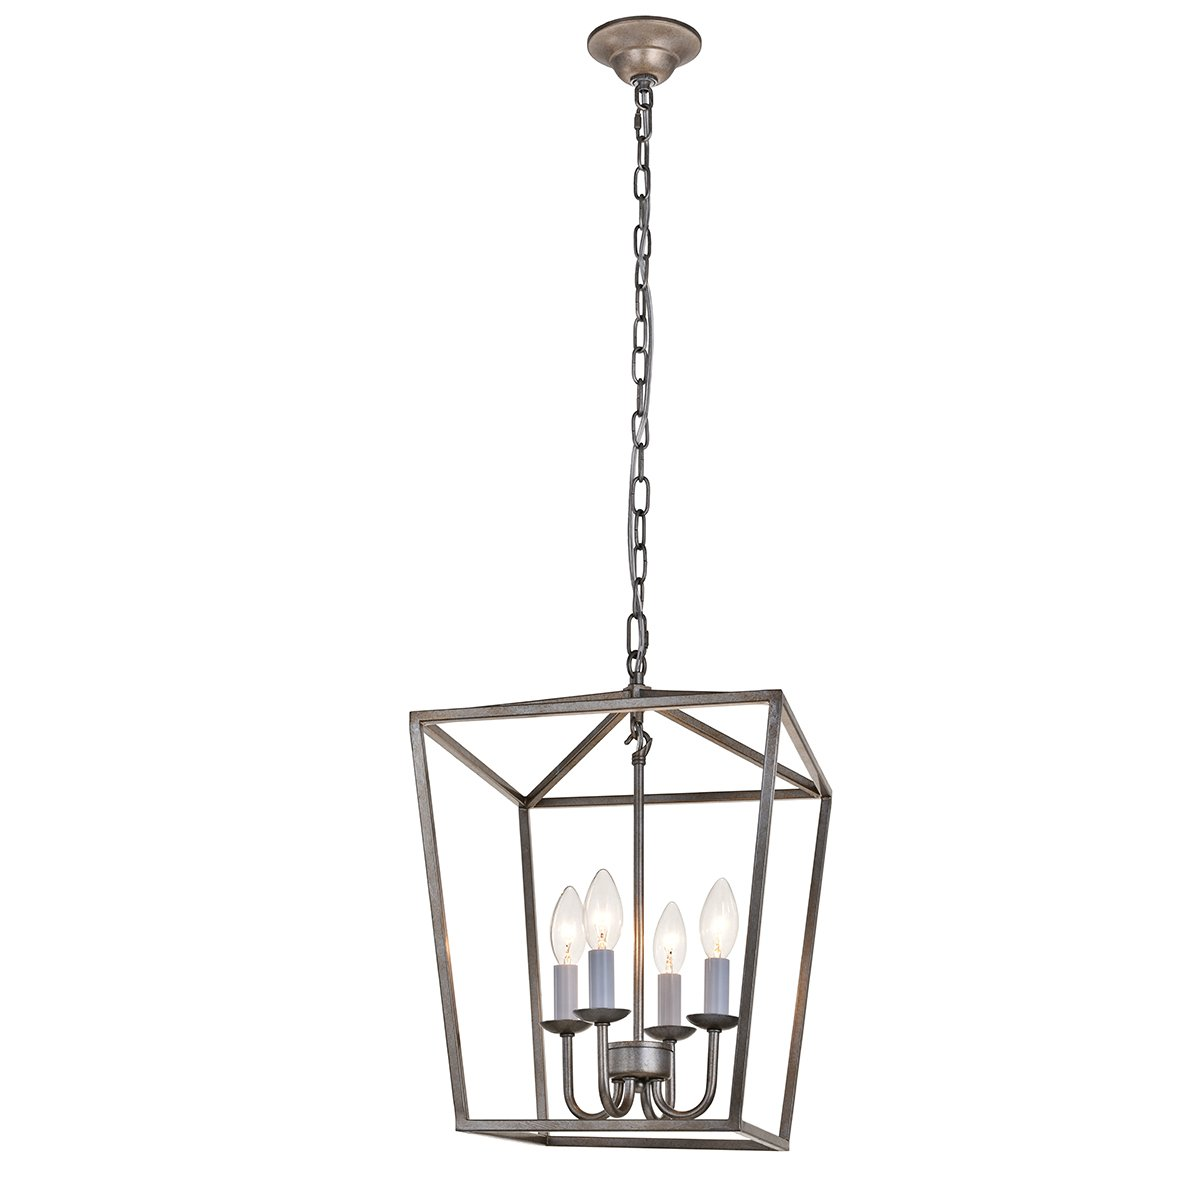 ANJIADENGSHI Lantern Pendant Light Industrial Vintage Lantern Iron Cage Hanging with 4 E12 Bulbs Lantern Chandelier for Traditional Dining Room Bar Cafe, Antique Silver